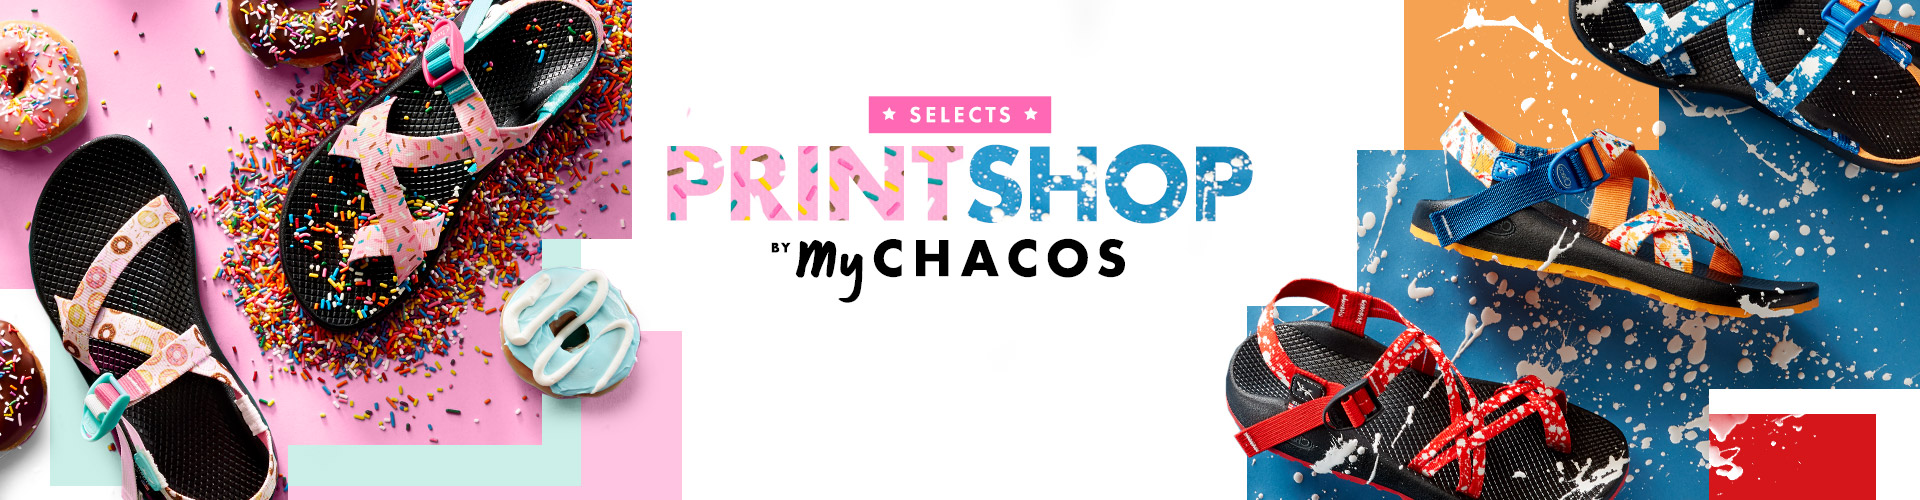 Selects. Printshop by My Chacos